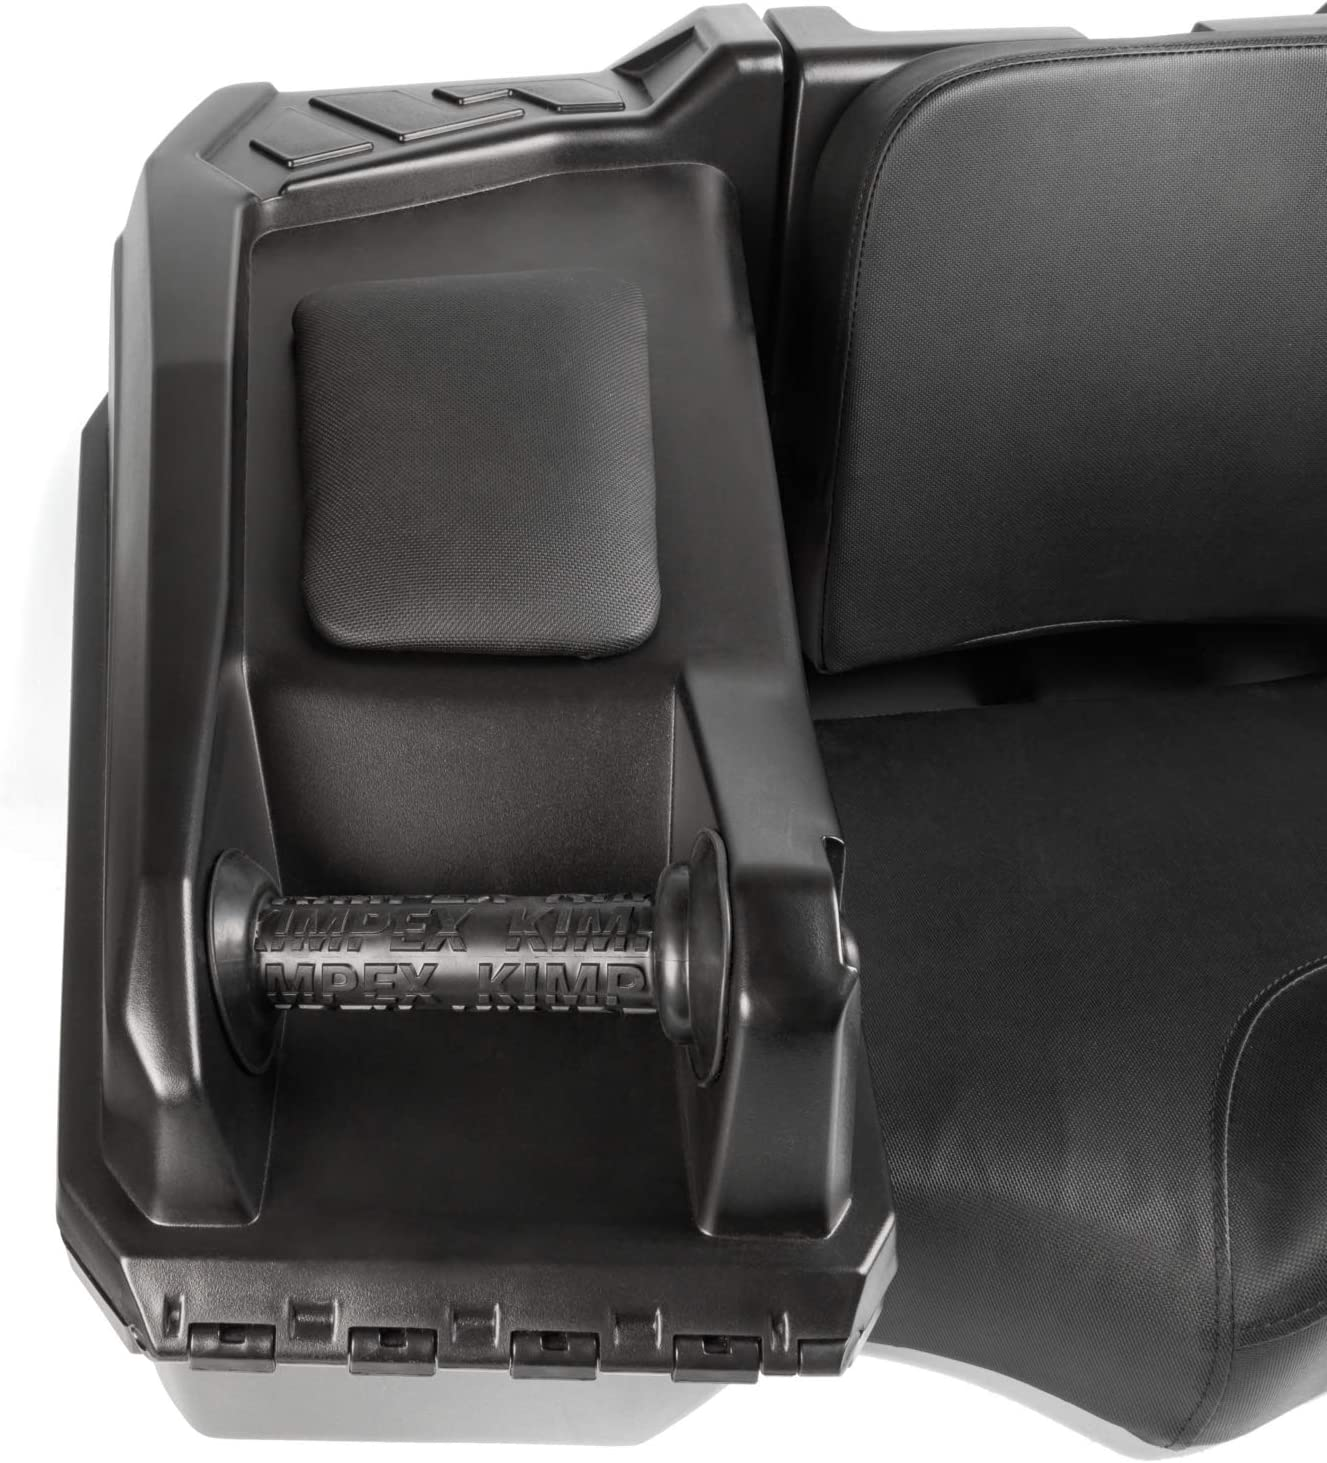 Kimpex Elbow Pad Cushion for the Nomad Trunk